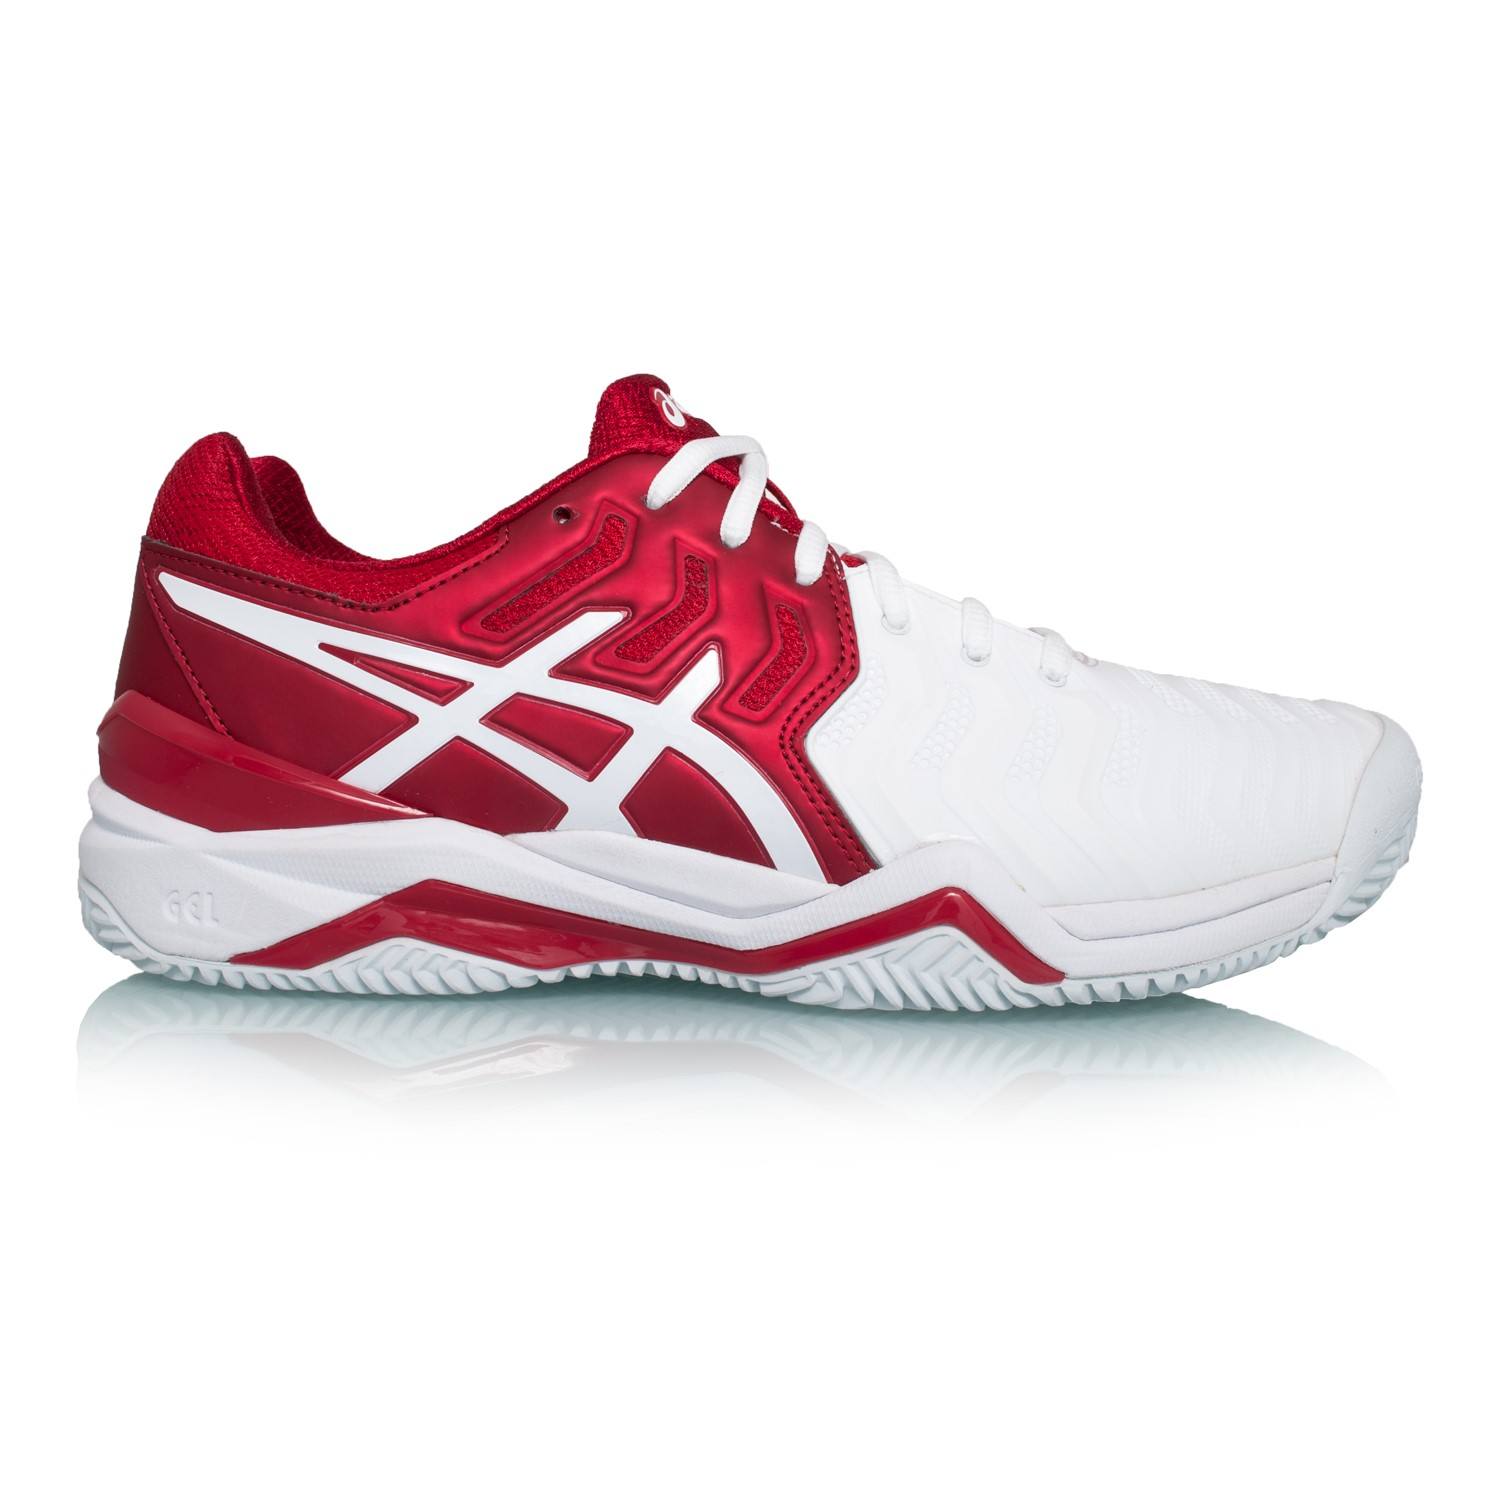 0c30cd8c94971 Asics Gel Resolution 7 Clay Novak Djokovic - Mens Tennis Shoes - Red White